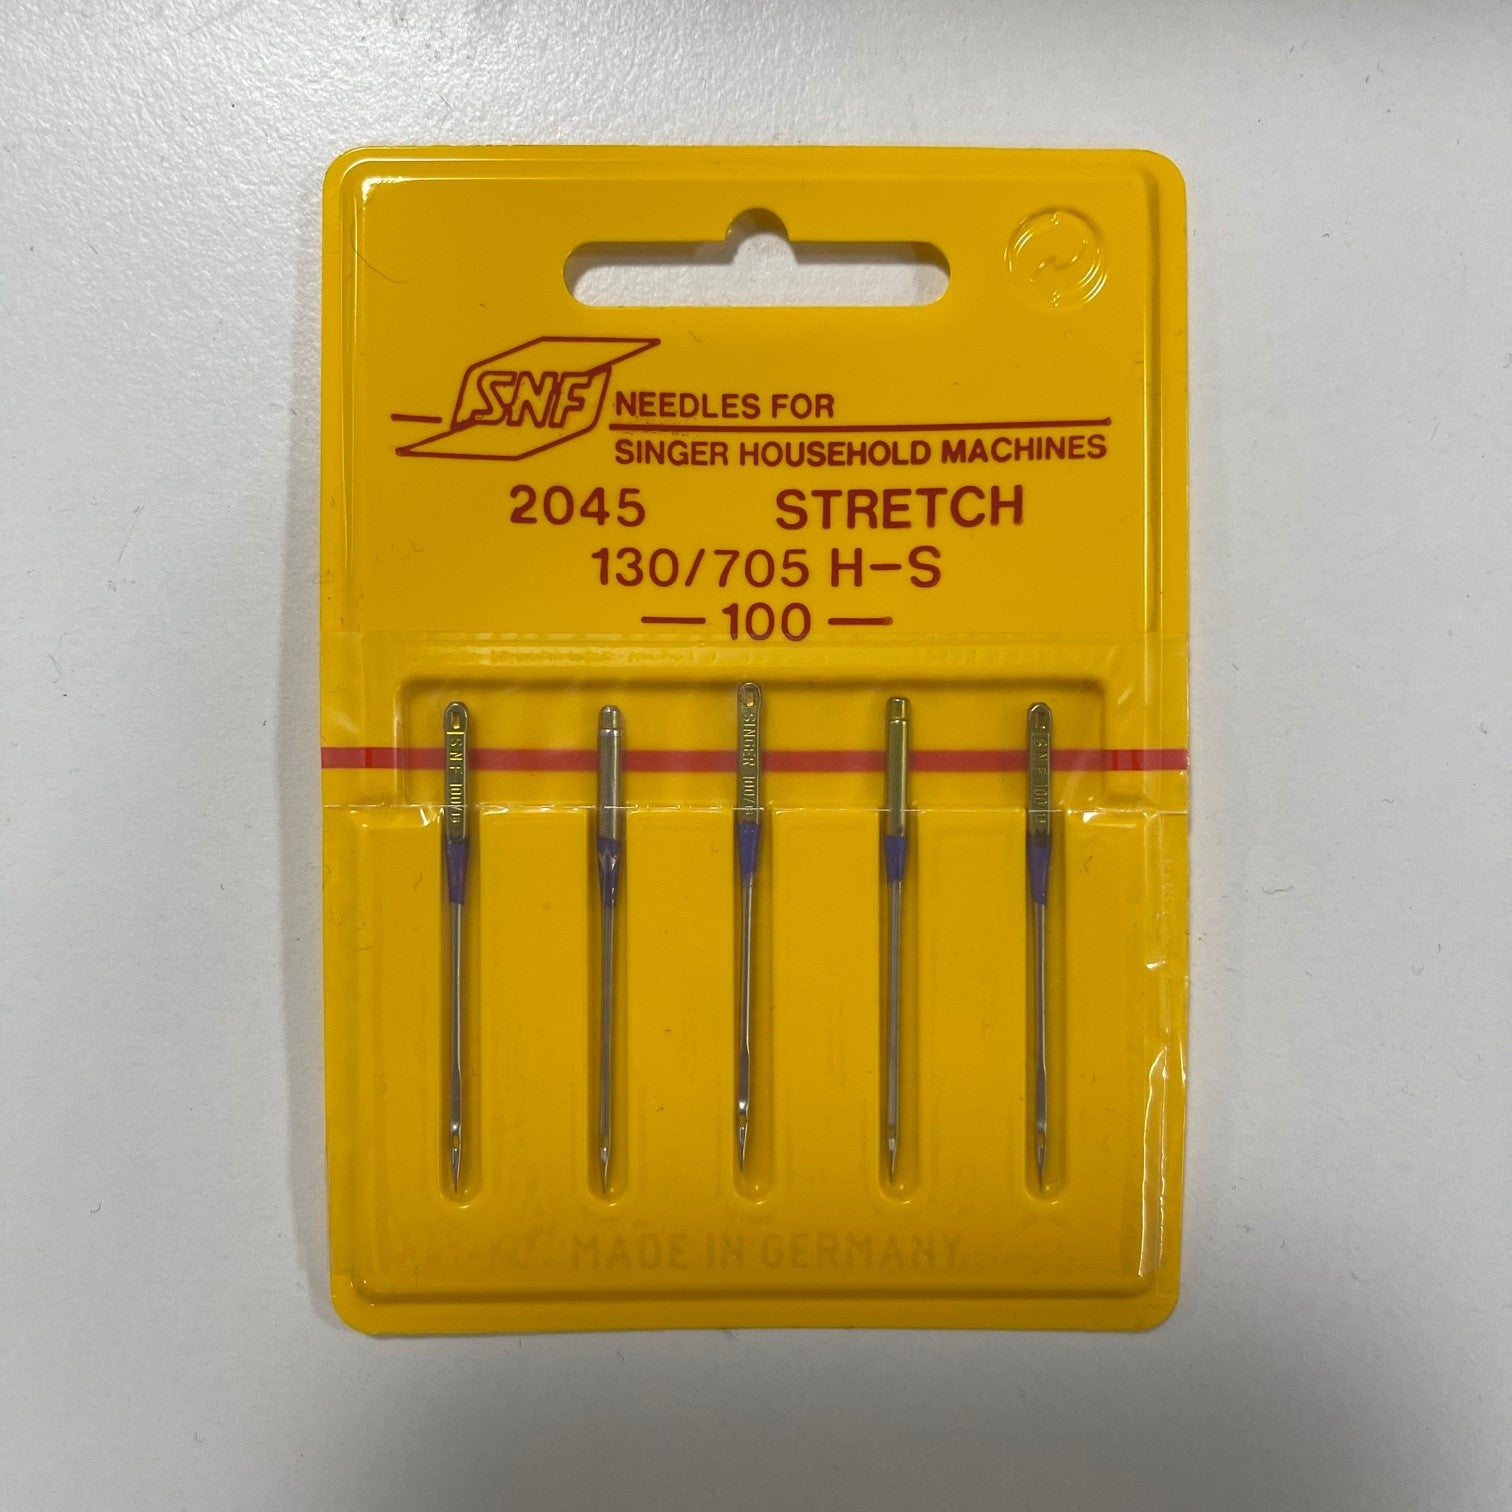 5 x Stretch 2045 100 weight needles for Singer machines (made in Germany)